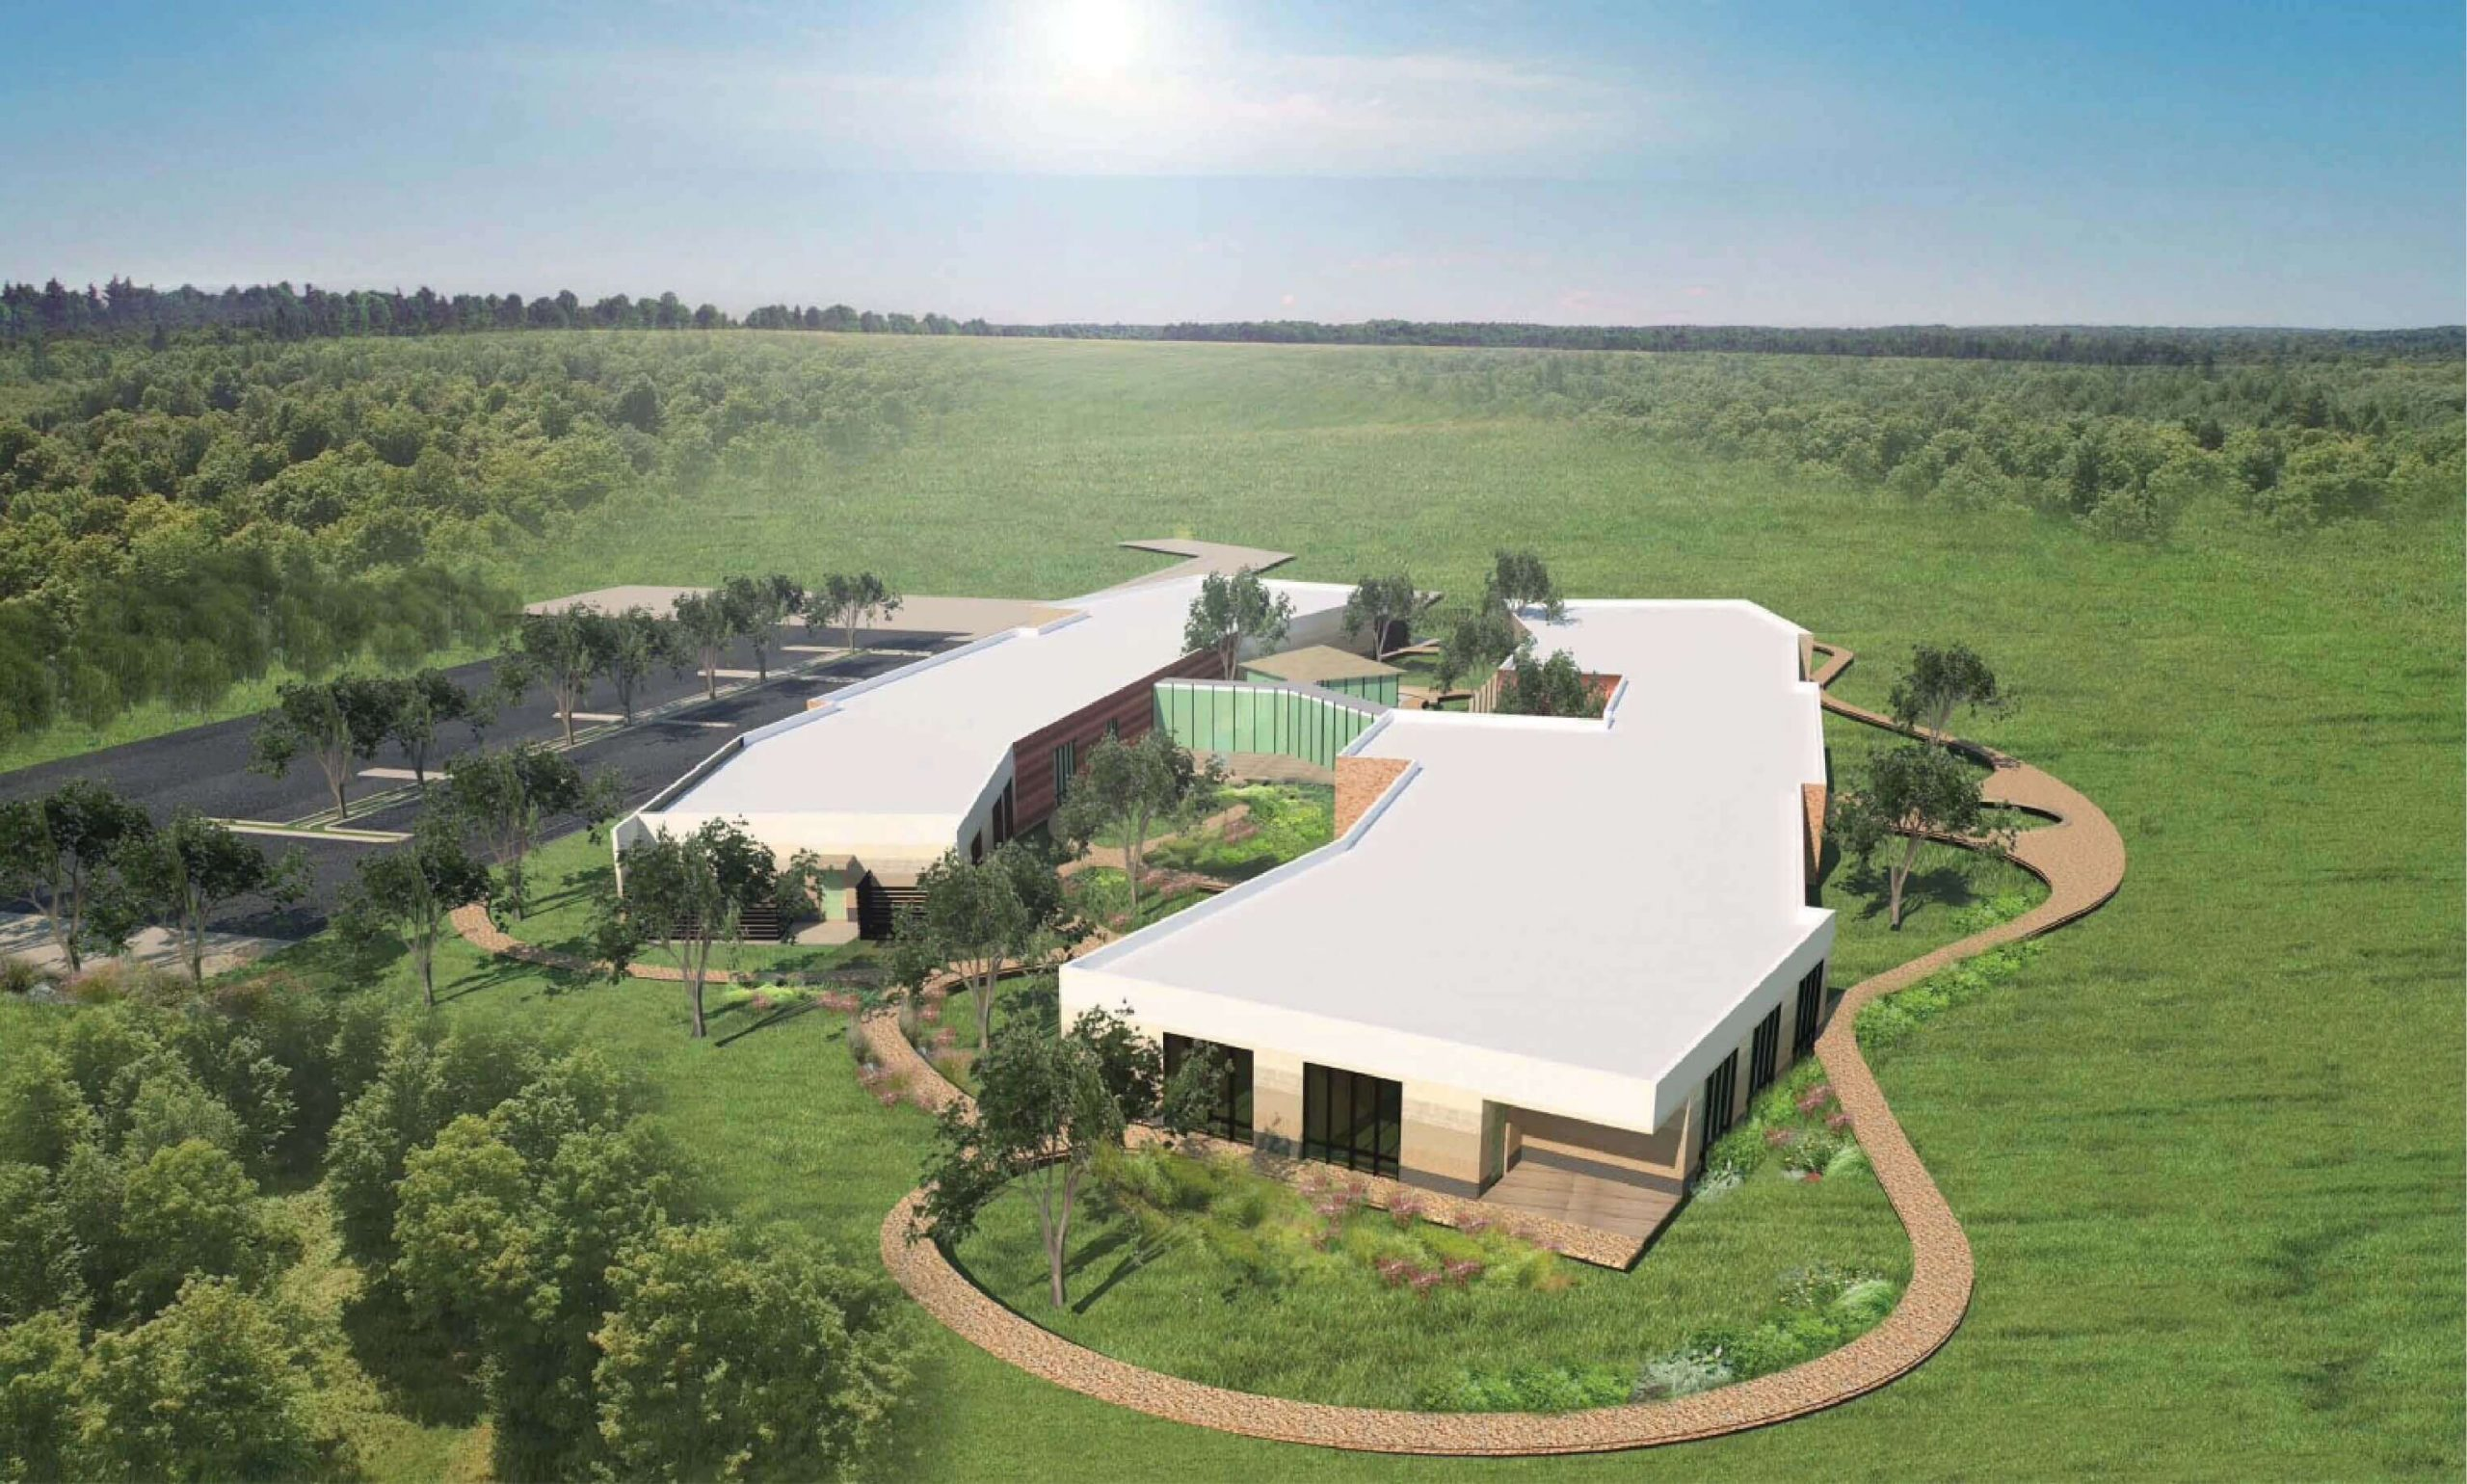 Artists impression of the new Anam Cara building and grounds